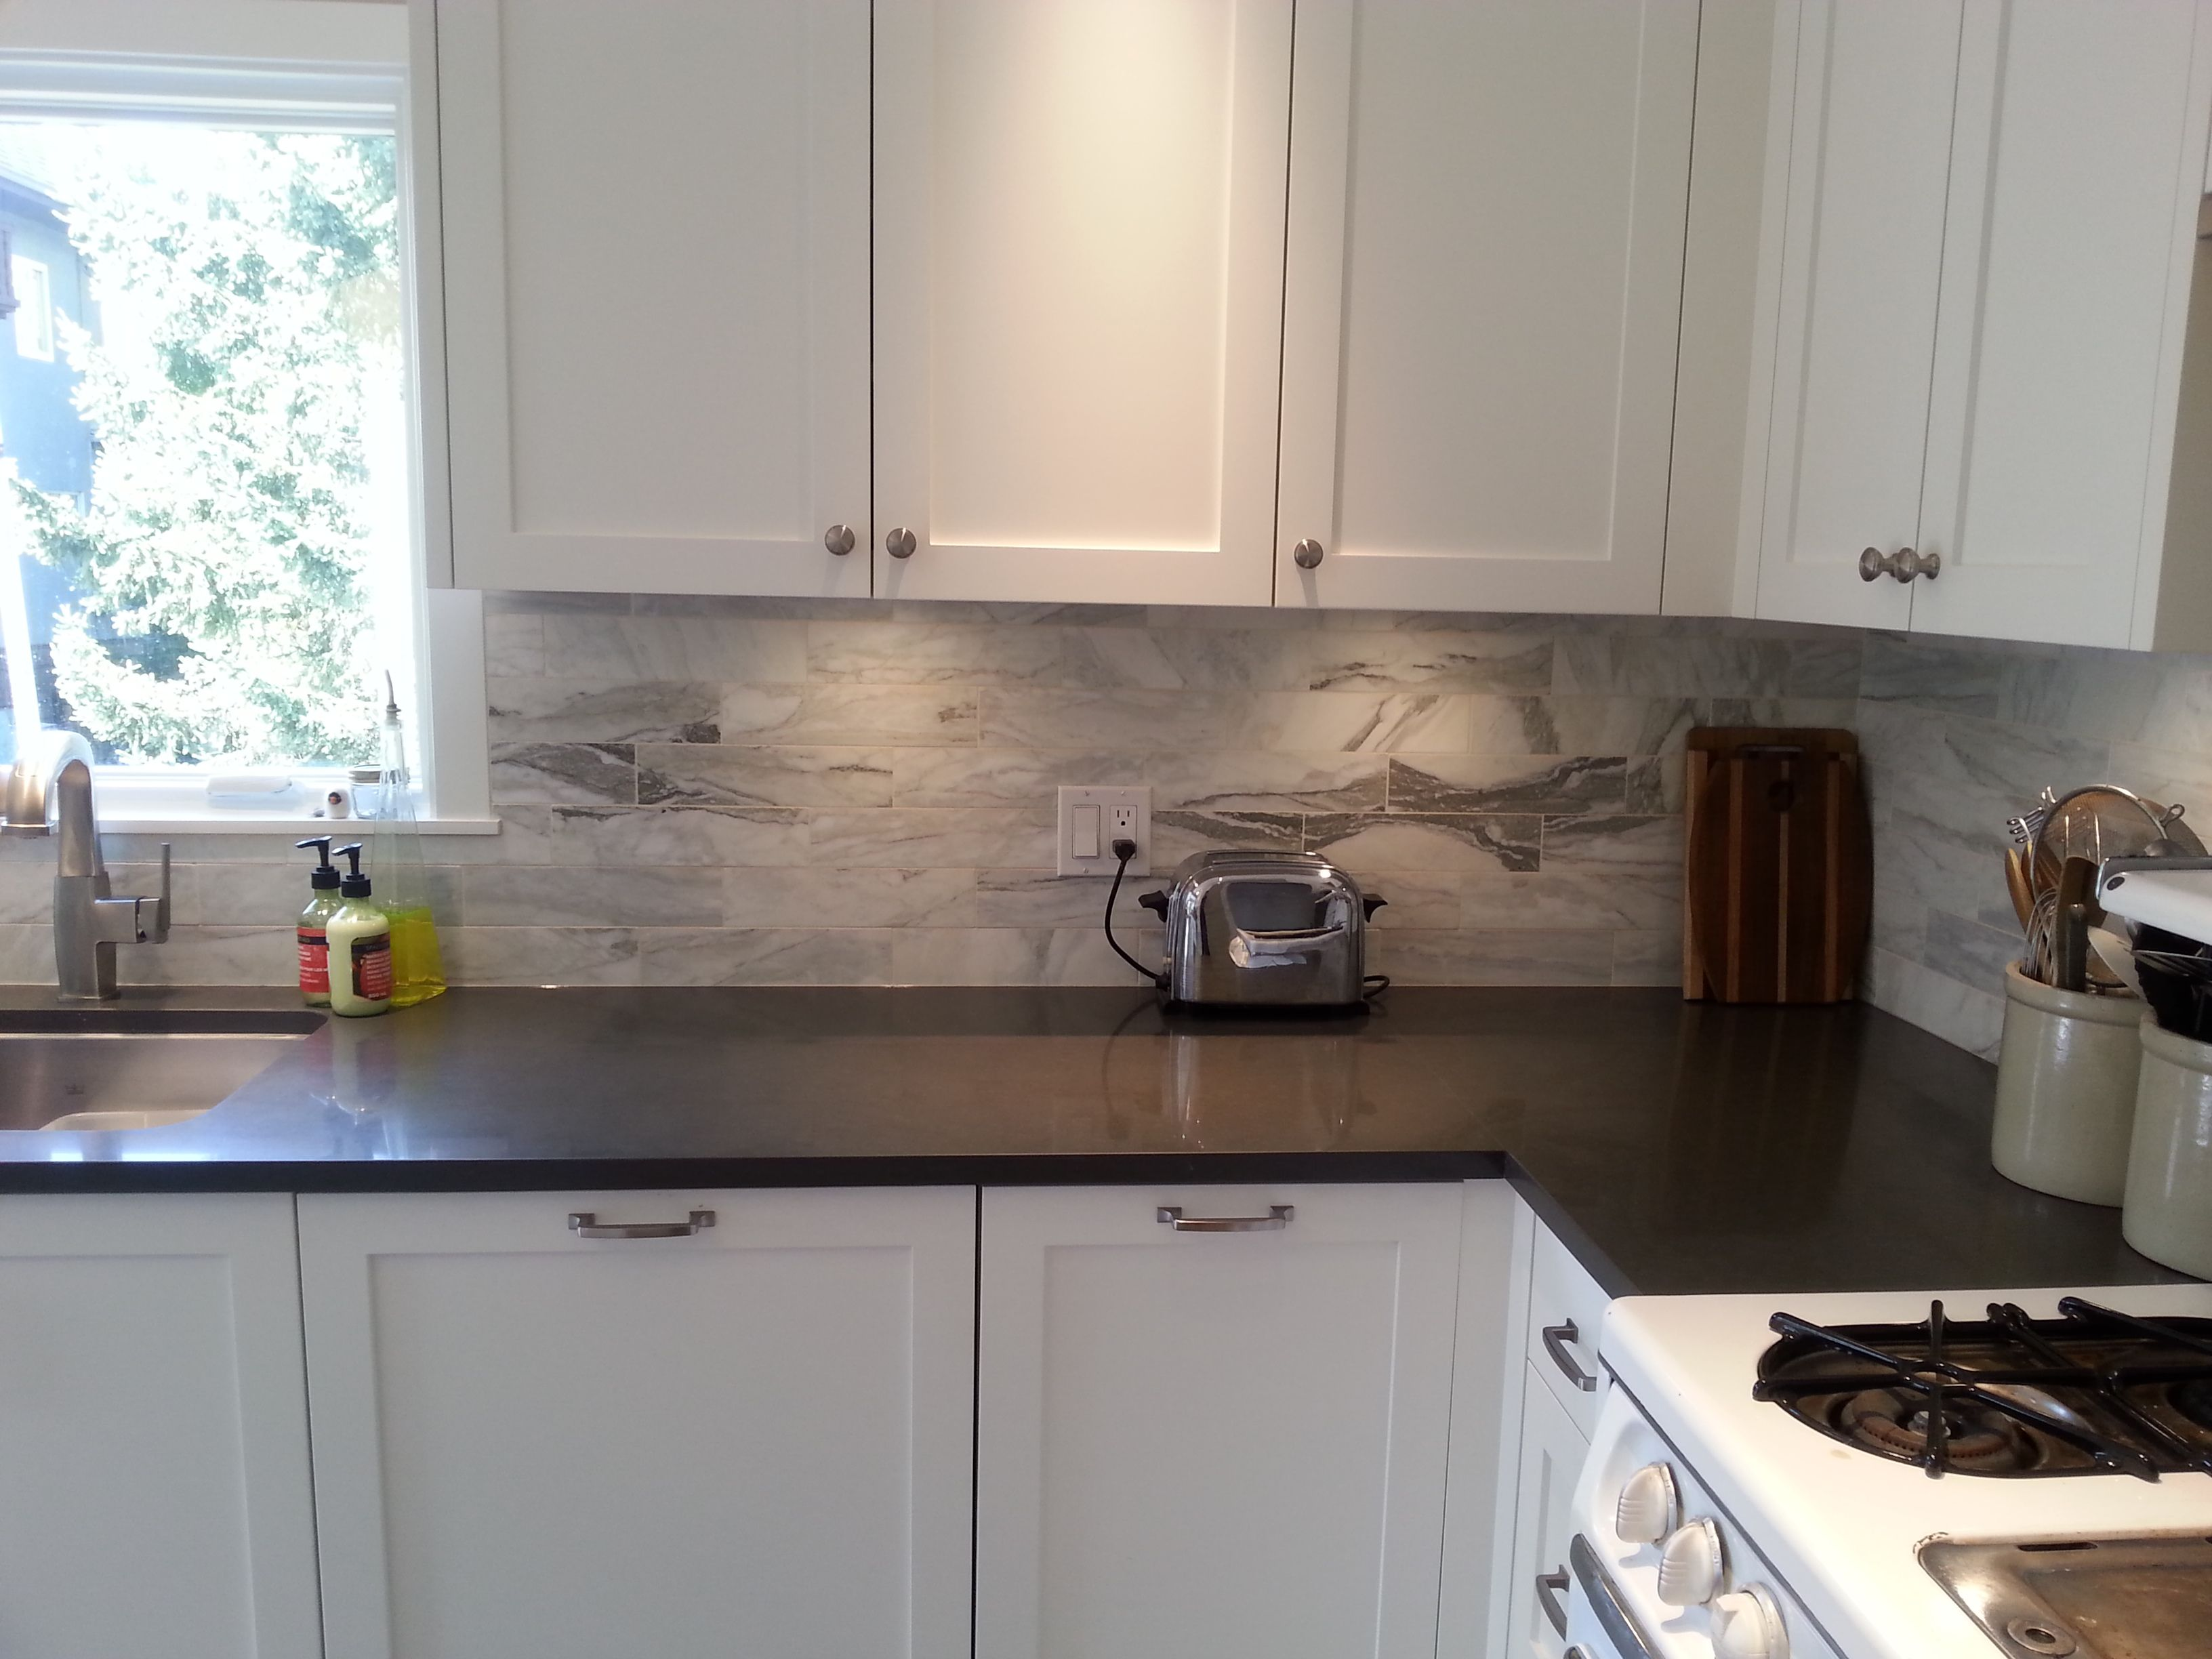 How Much Are Quartz Countertops Installed Vicostone Counter Top Installed By Archstone Kitchens 604